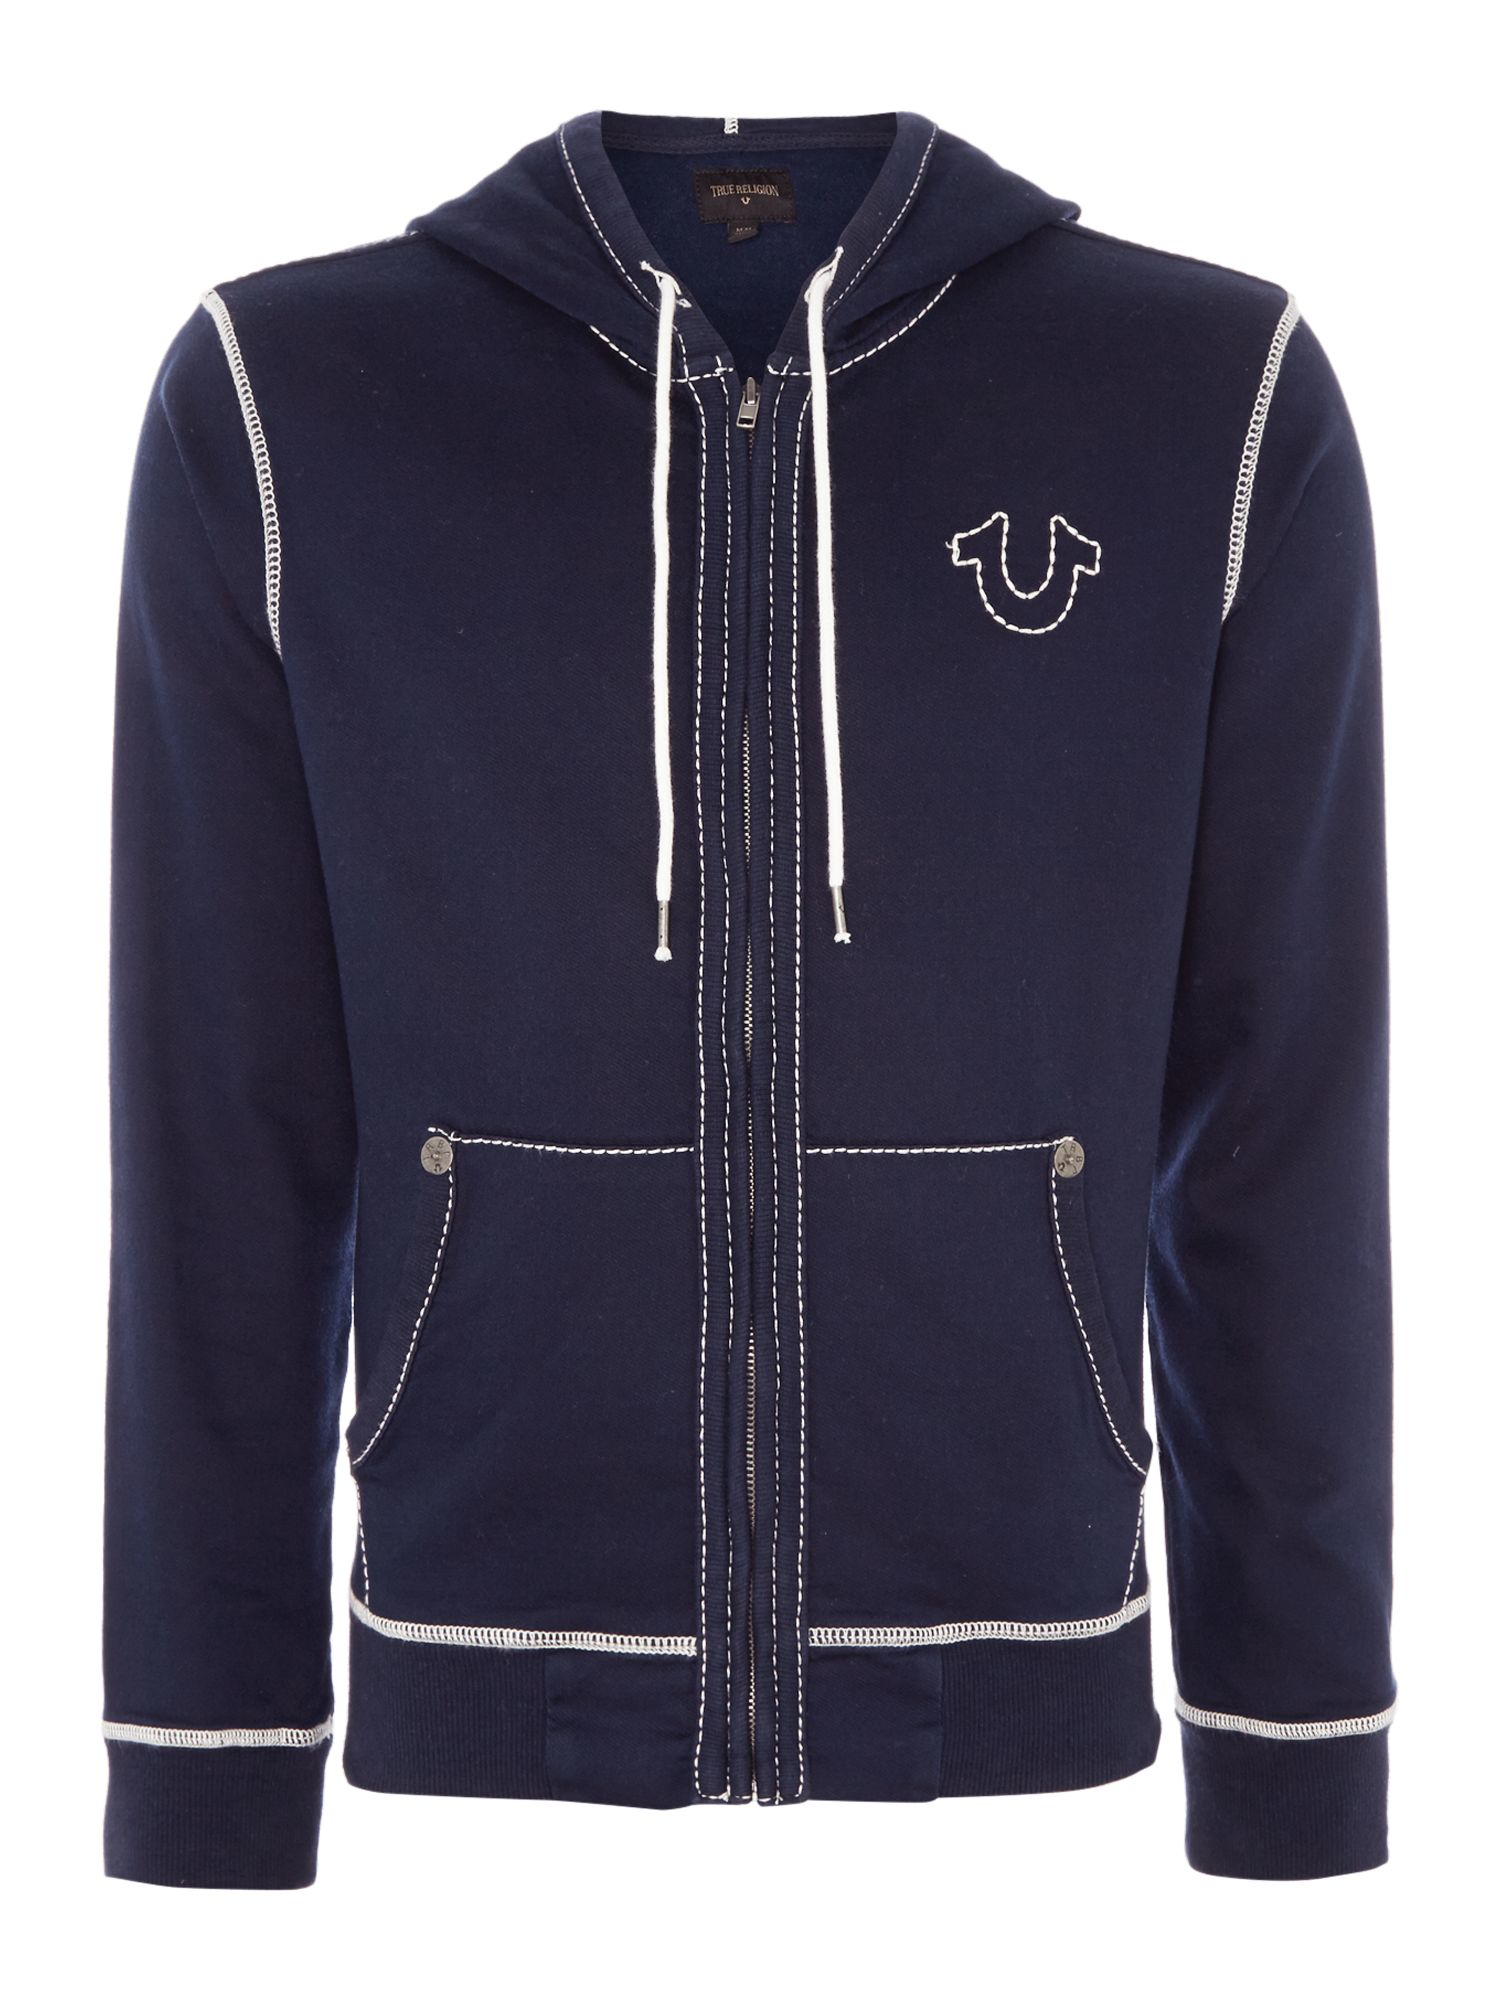 true religion contrast stitch full zip logo hoodie in blue for men lyst. Black Bedroom Furniture Sets. Home Design Ideas